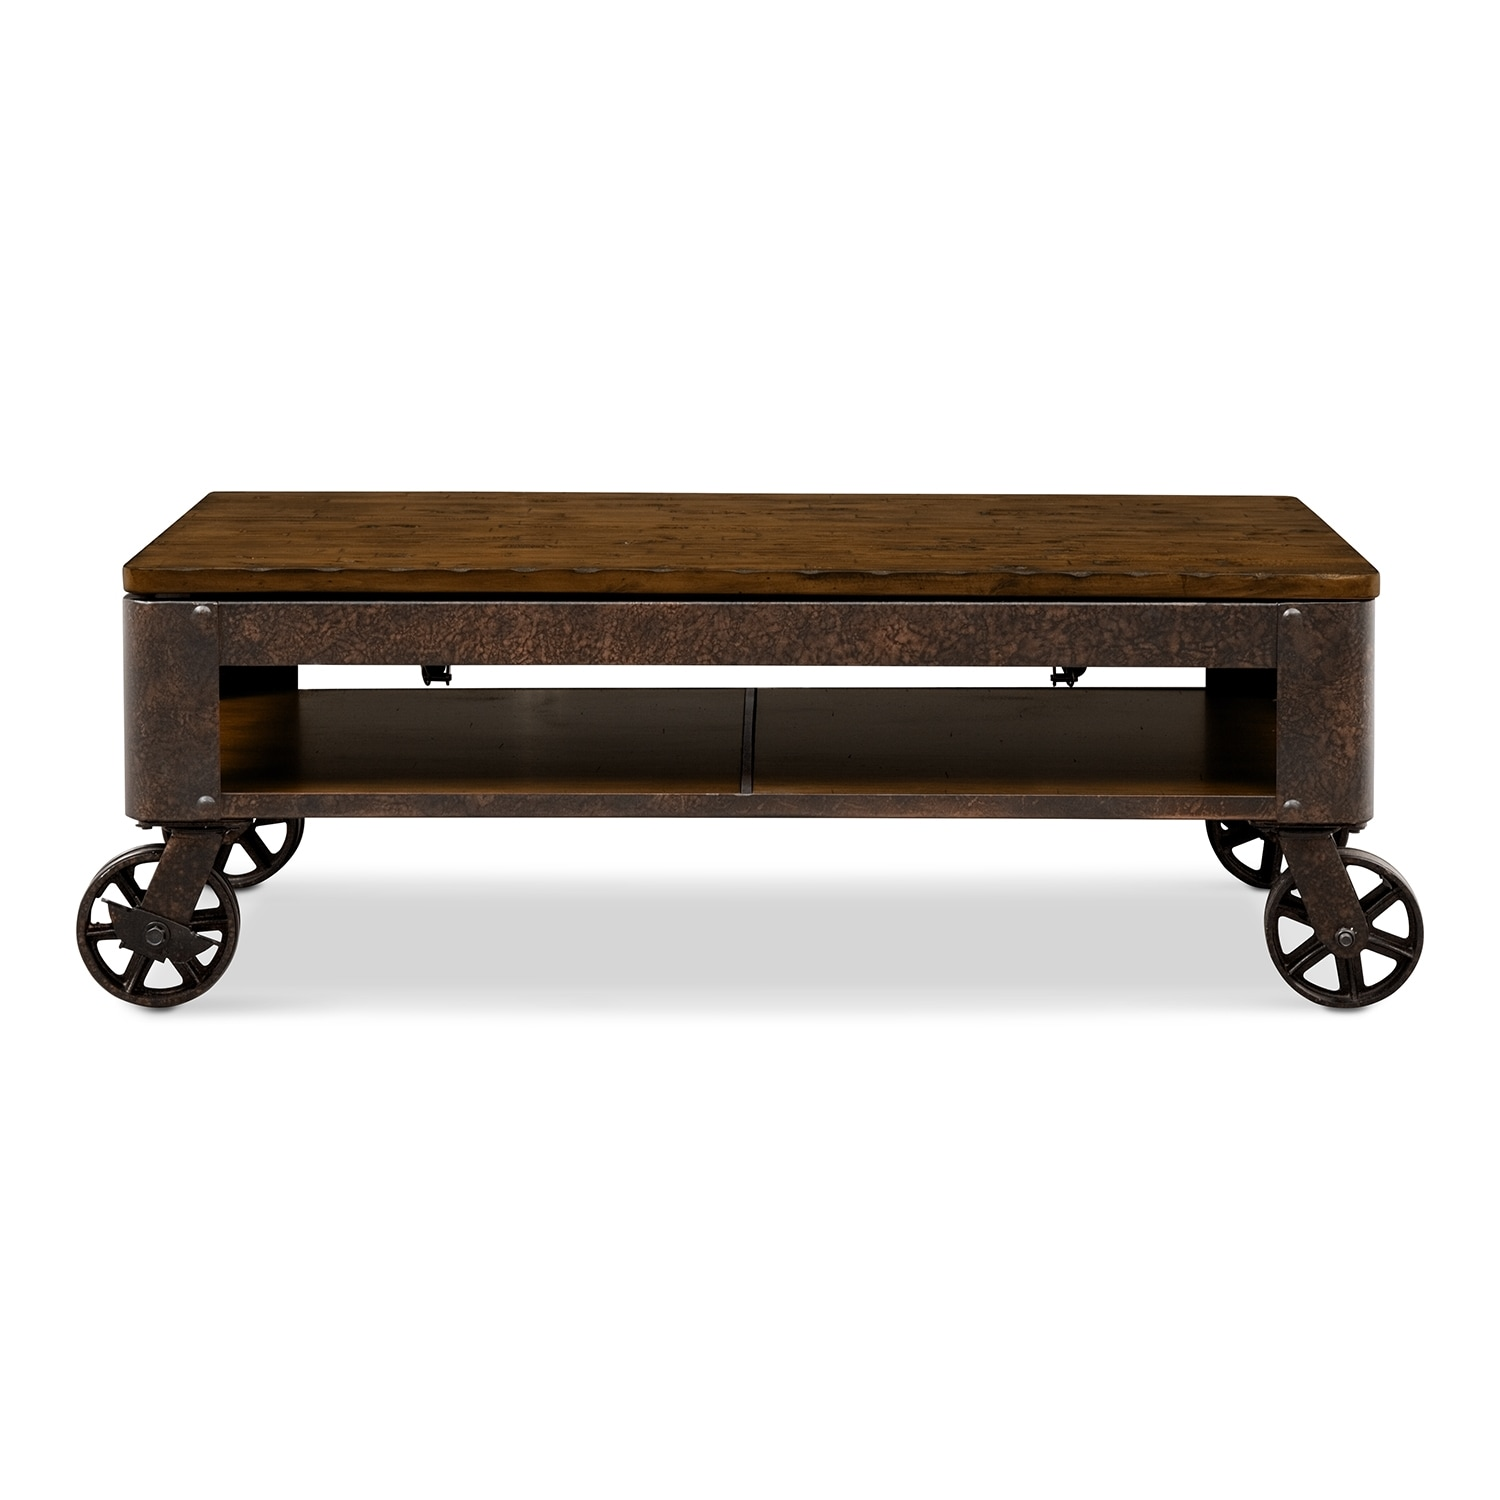 Shortline lift top cocktail table distressed pine american signature furniture Antique wheels for coffee table